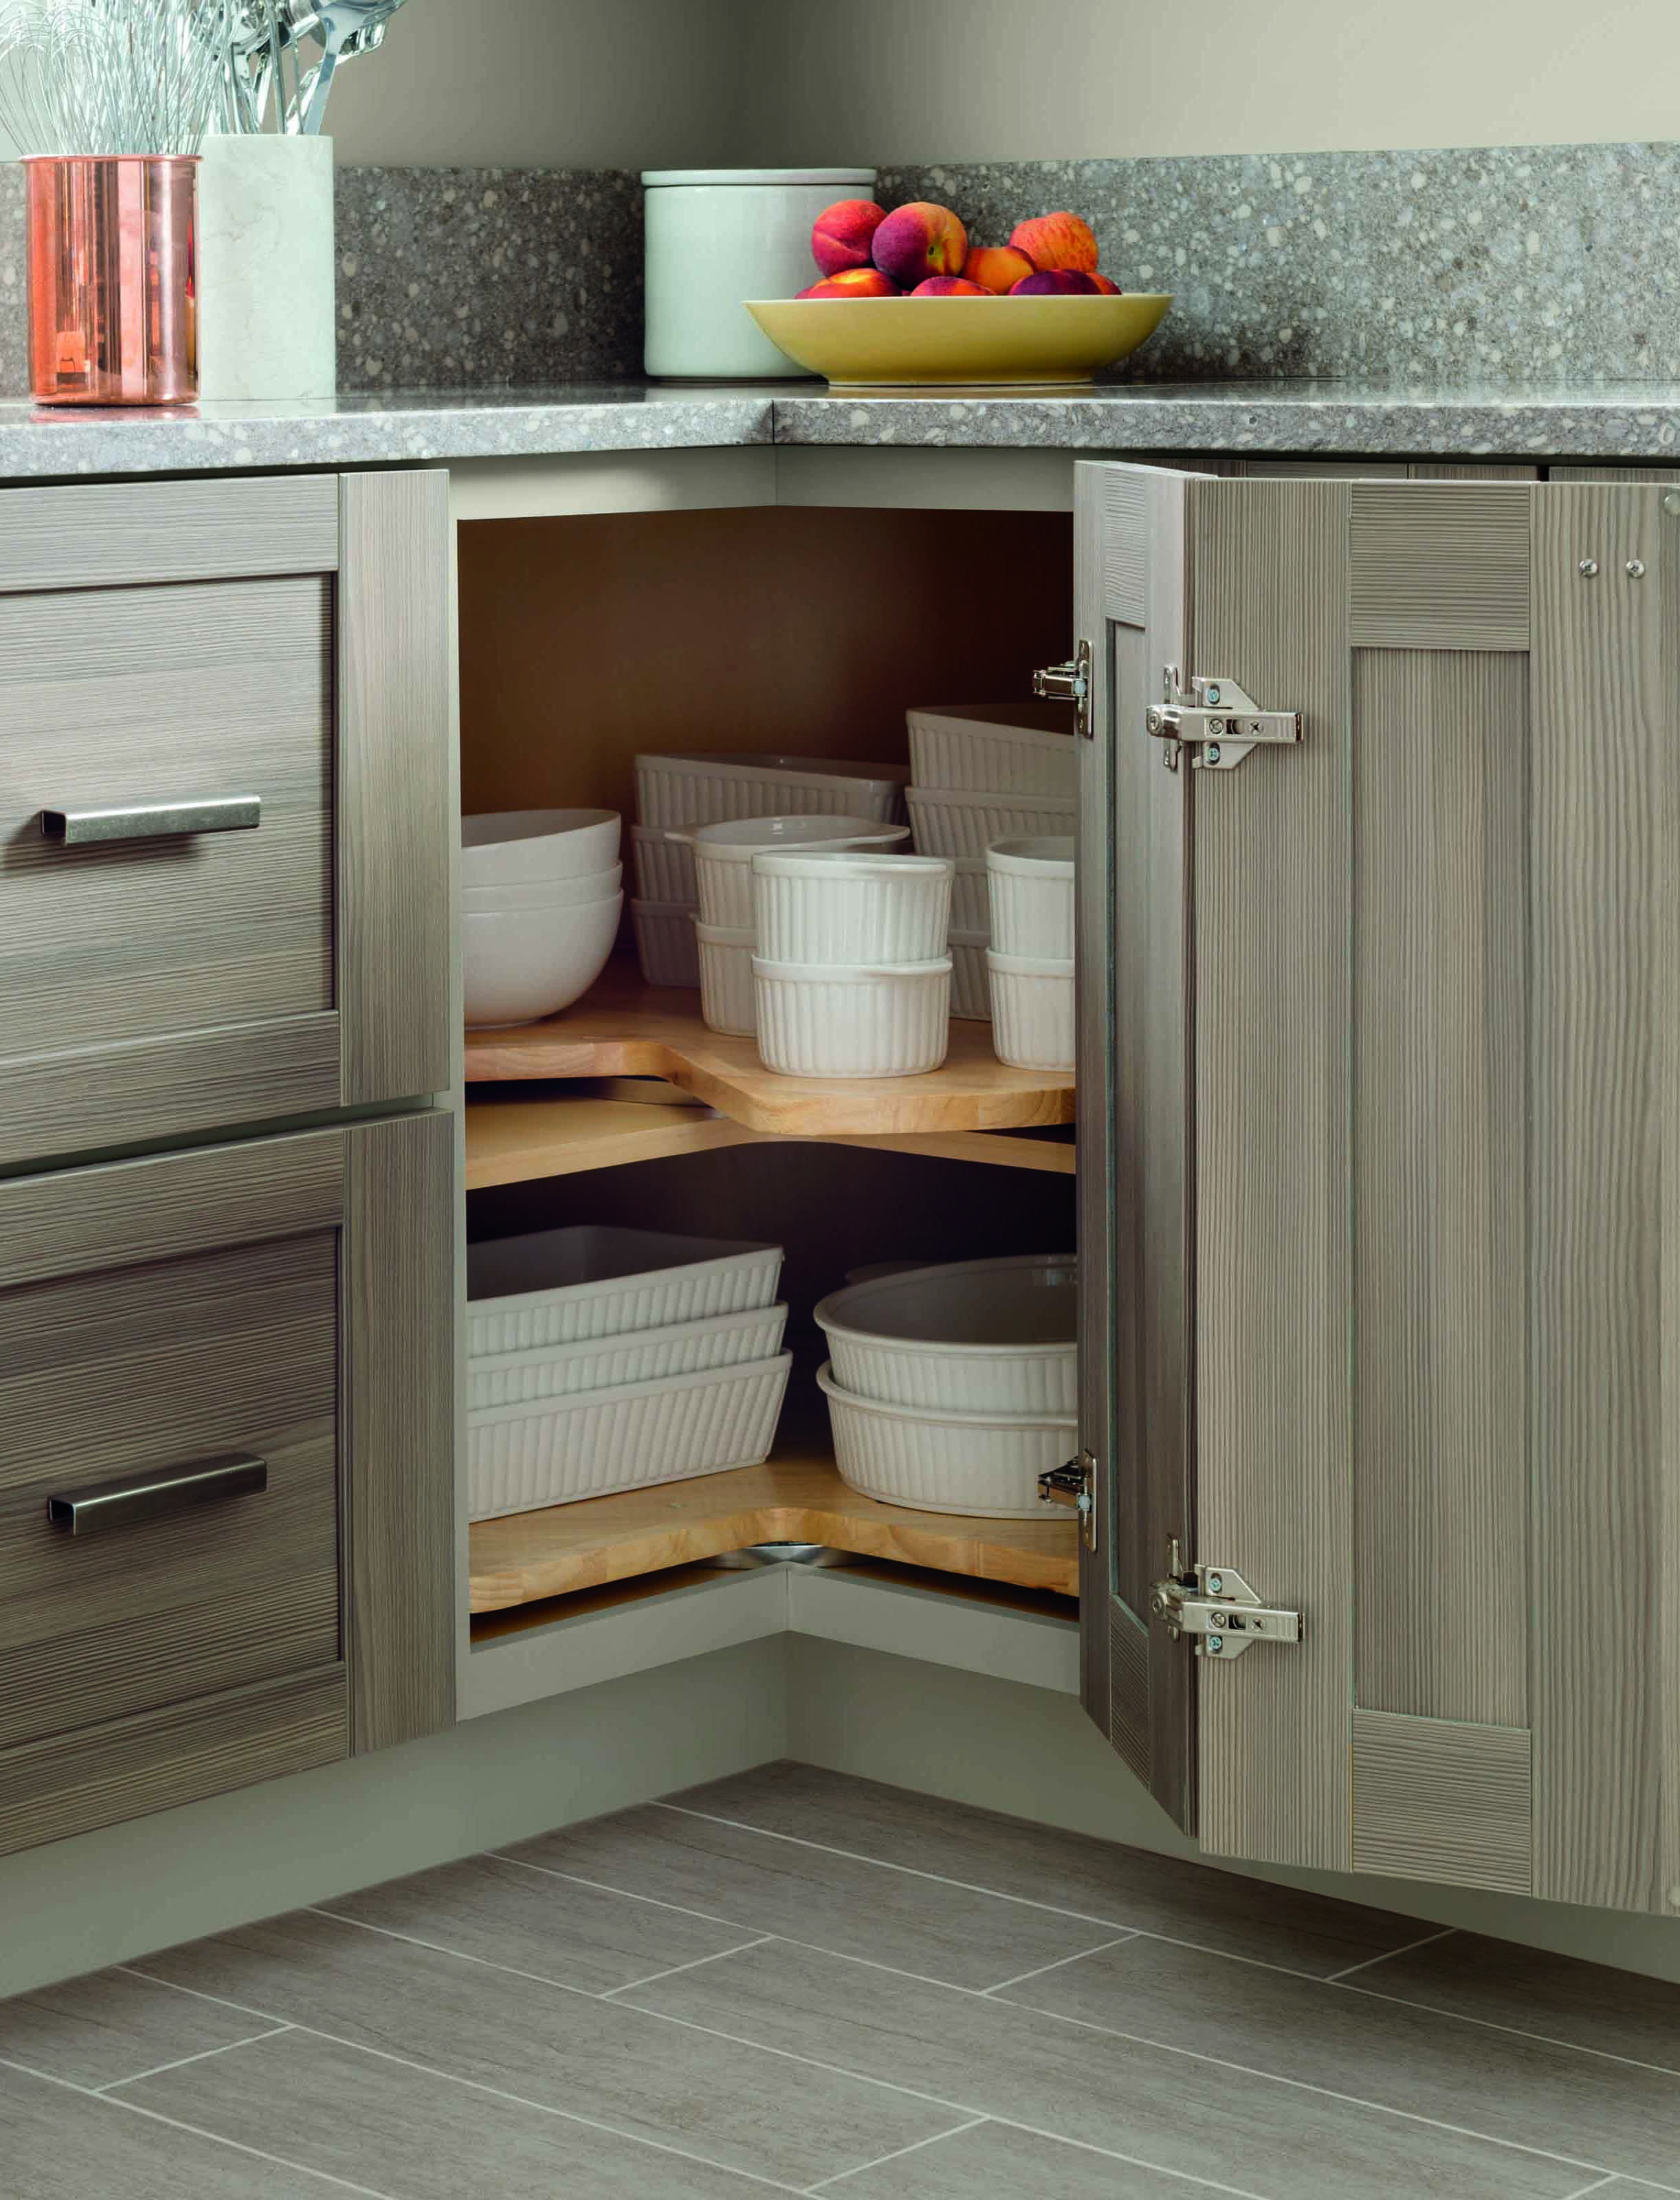 Ask Martha How Can I Organize my Kitchen? HOME